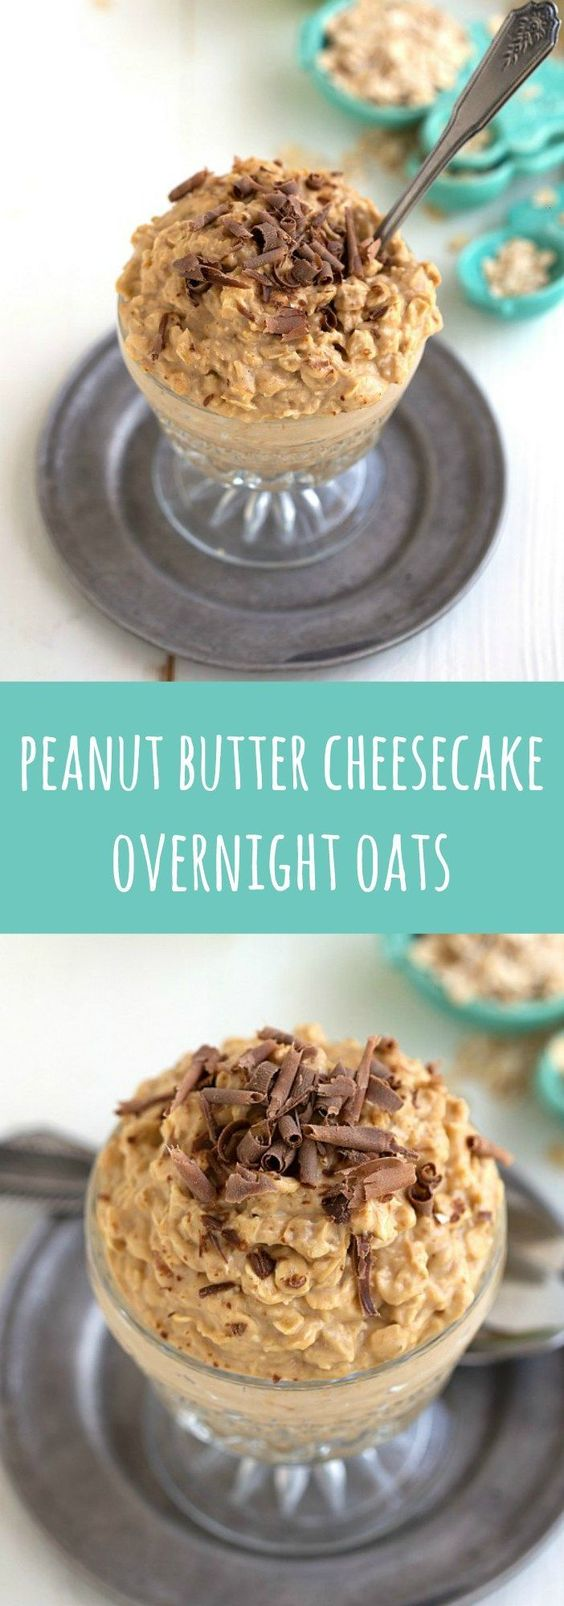 These delicious peanut butter cheesecake overnight oats make for an easy, quick, and healthy breakfast or snack option.